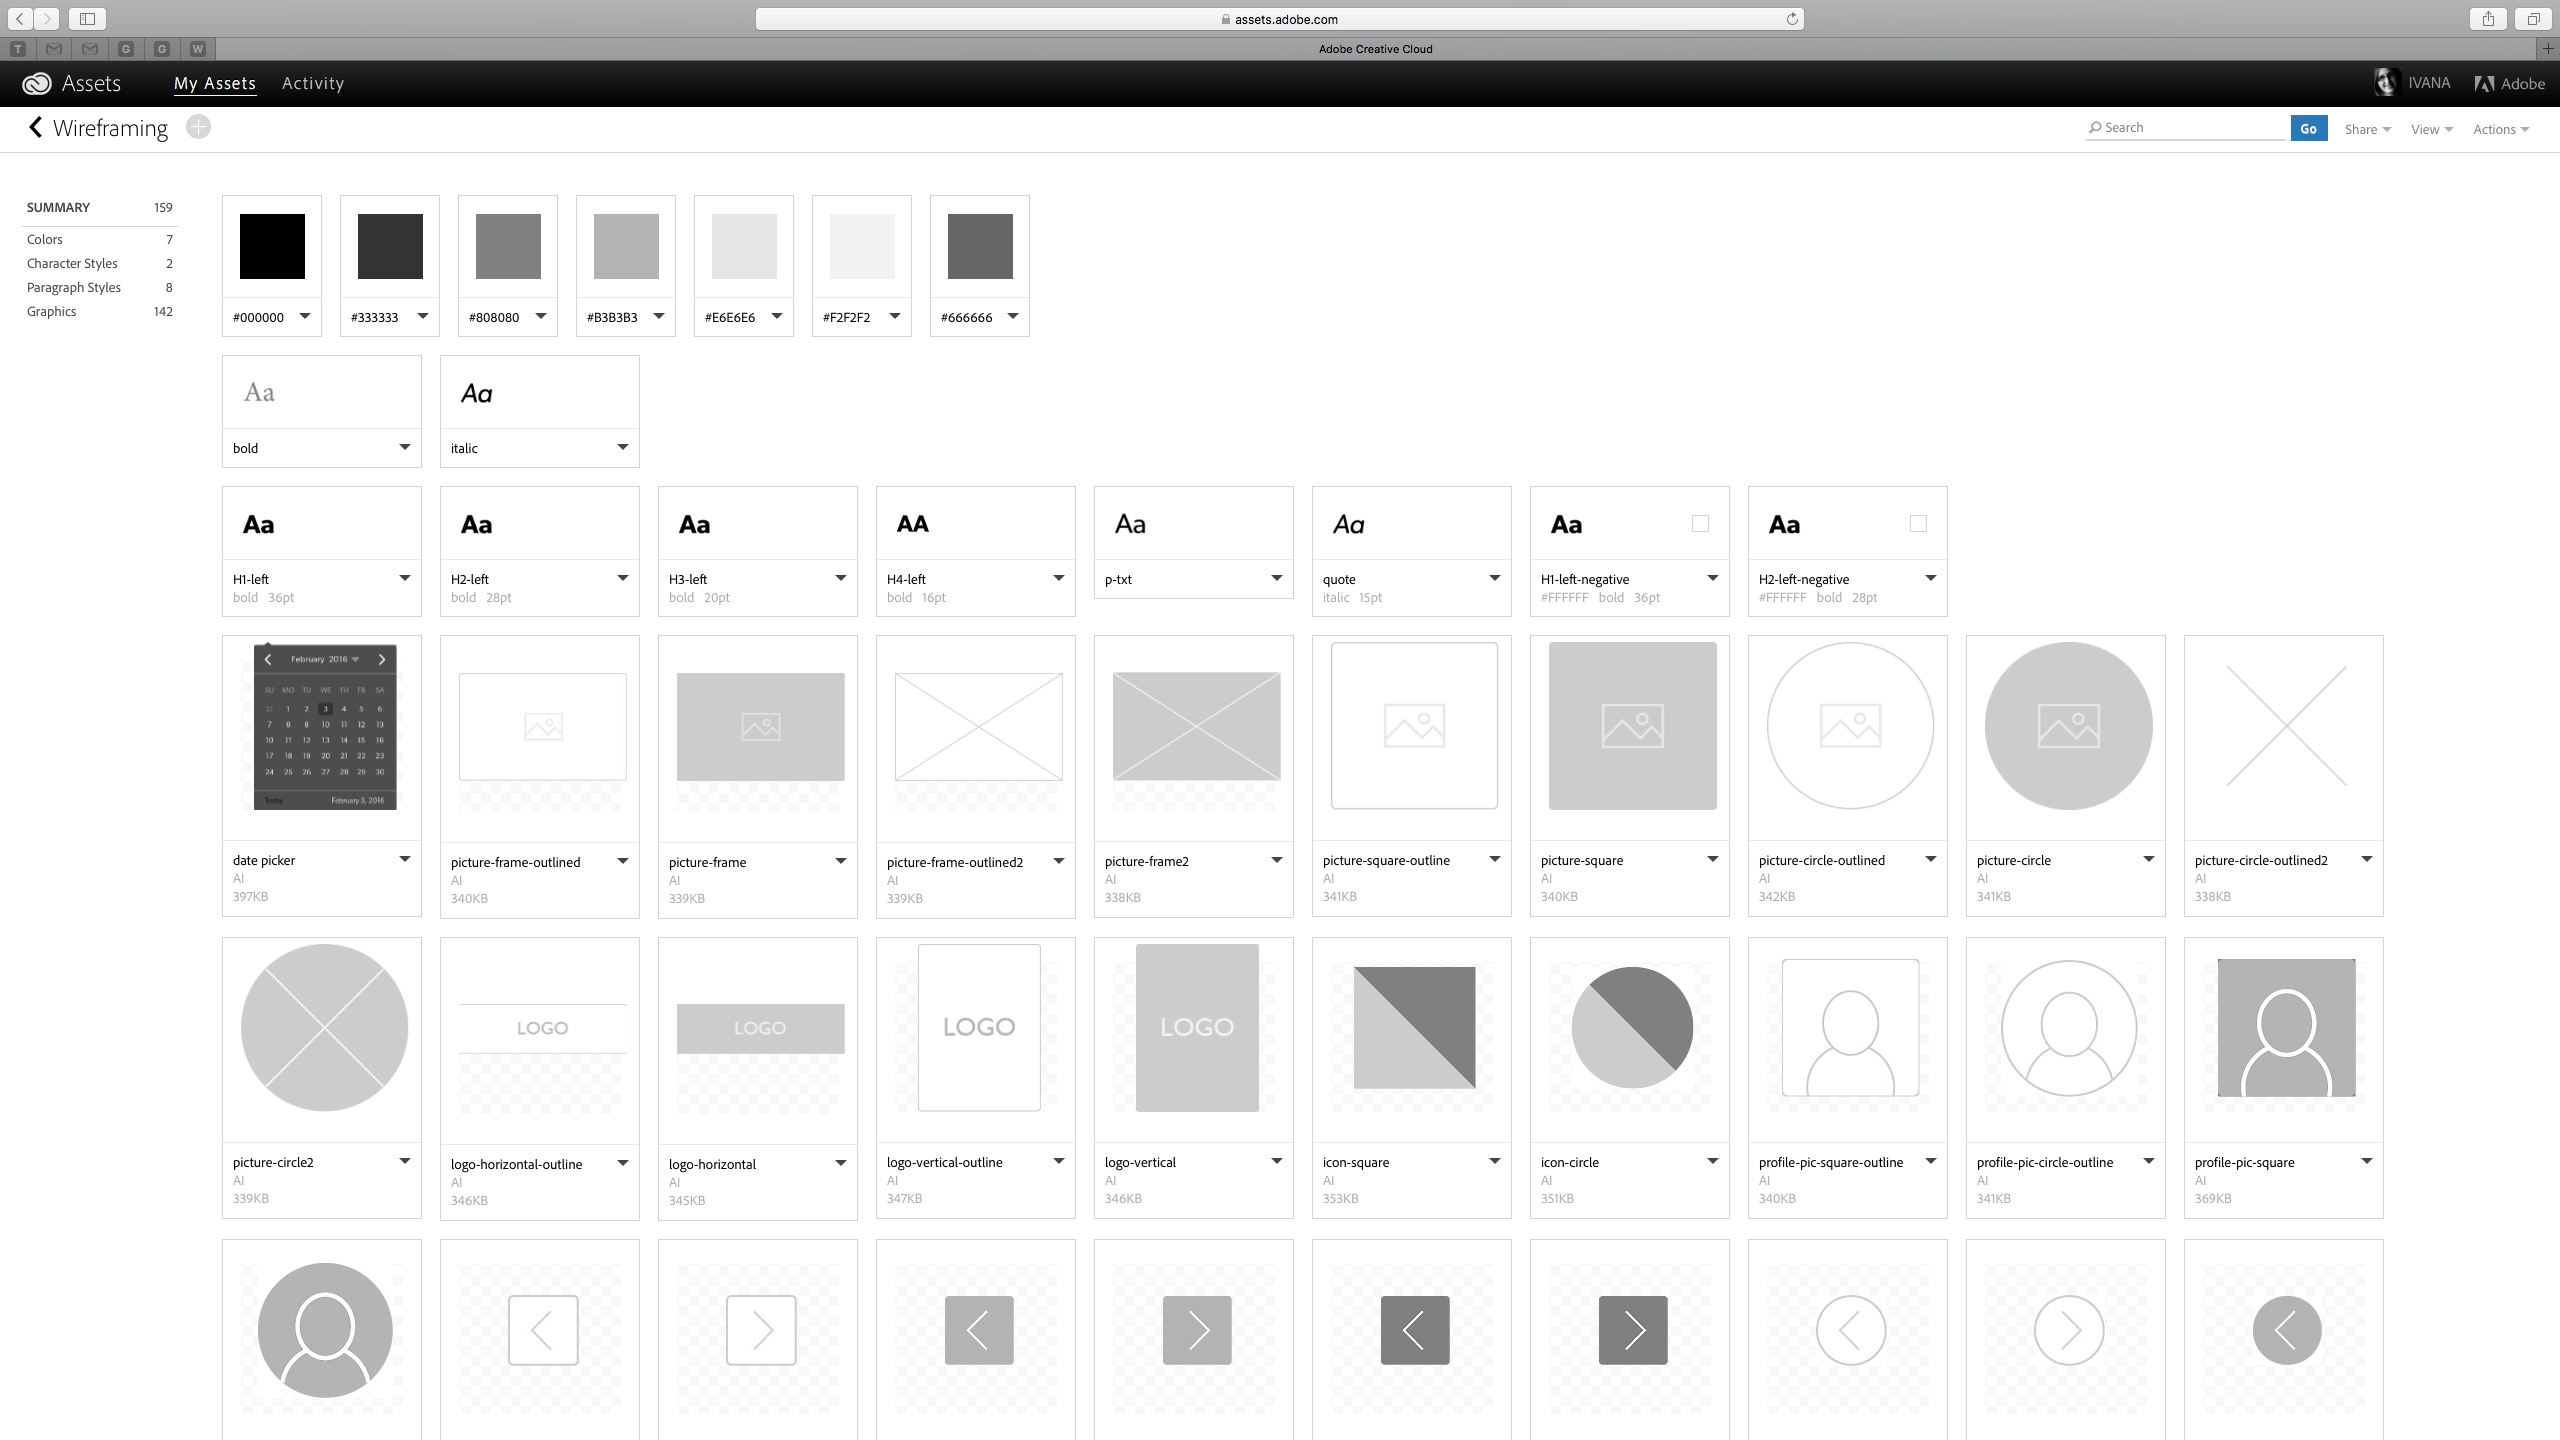 Who Knew Adobe CC Could Wireframe? - Image 2